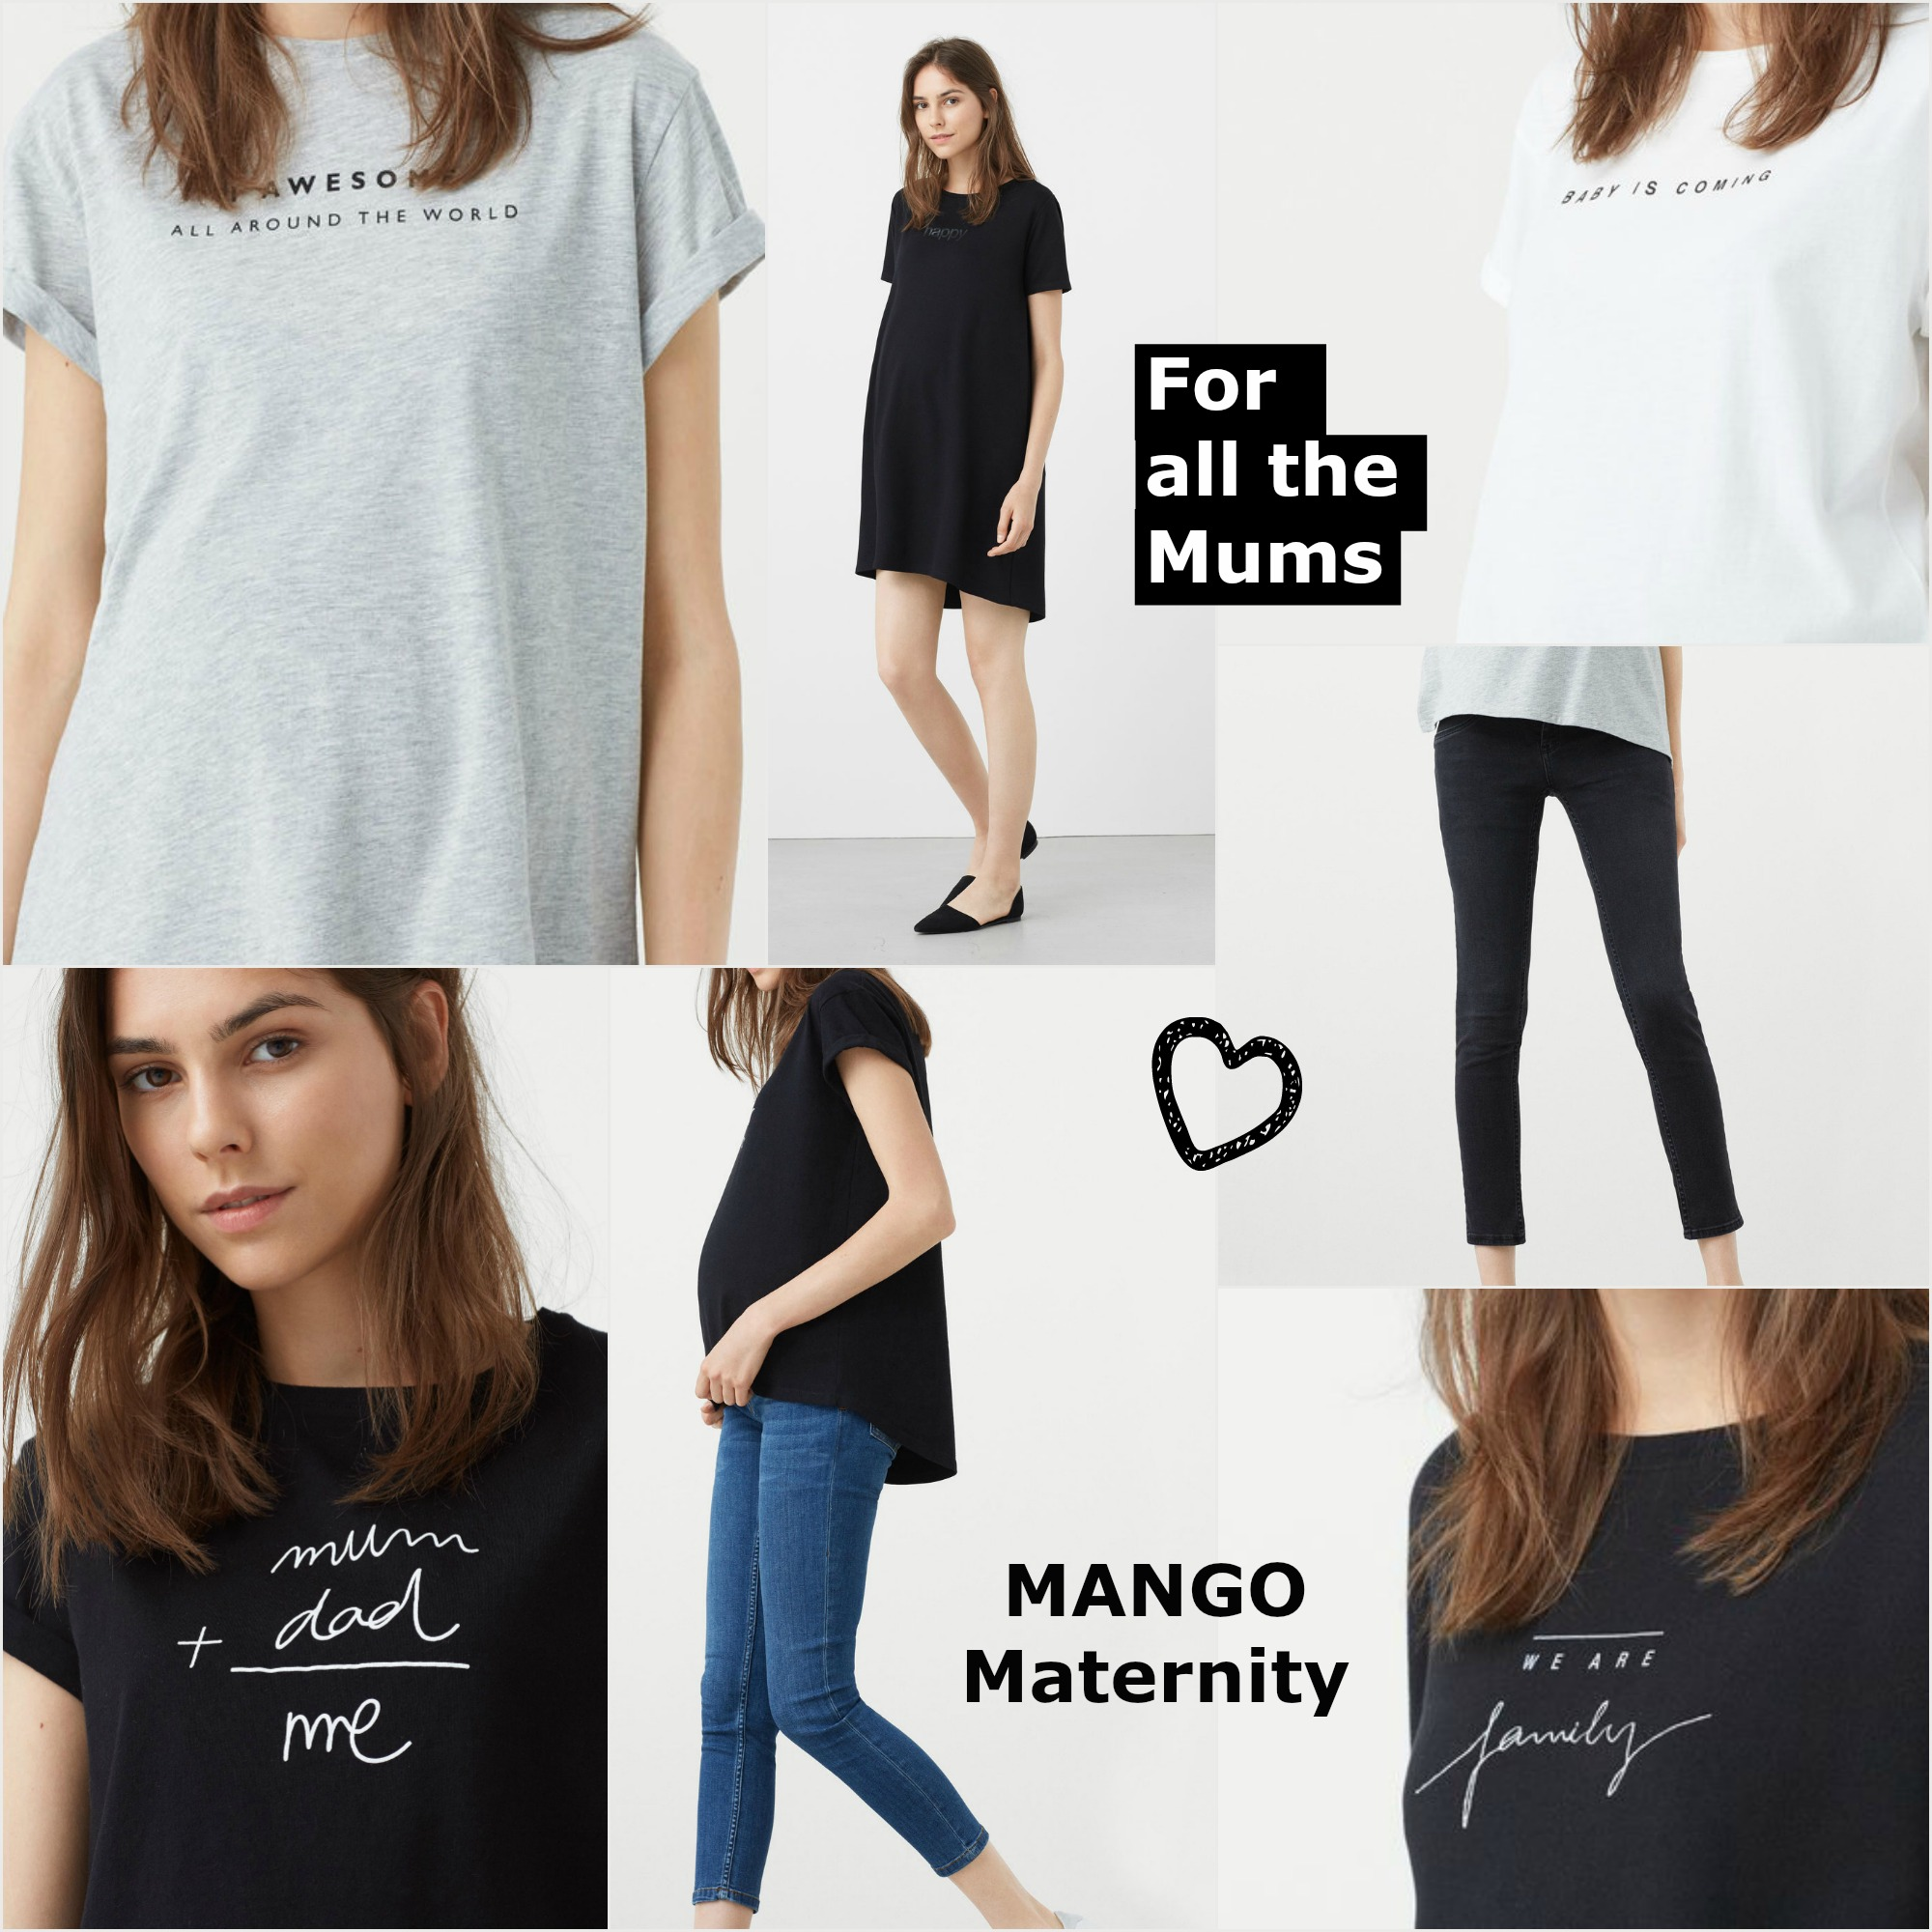 Mango_MaternityCollection